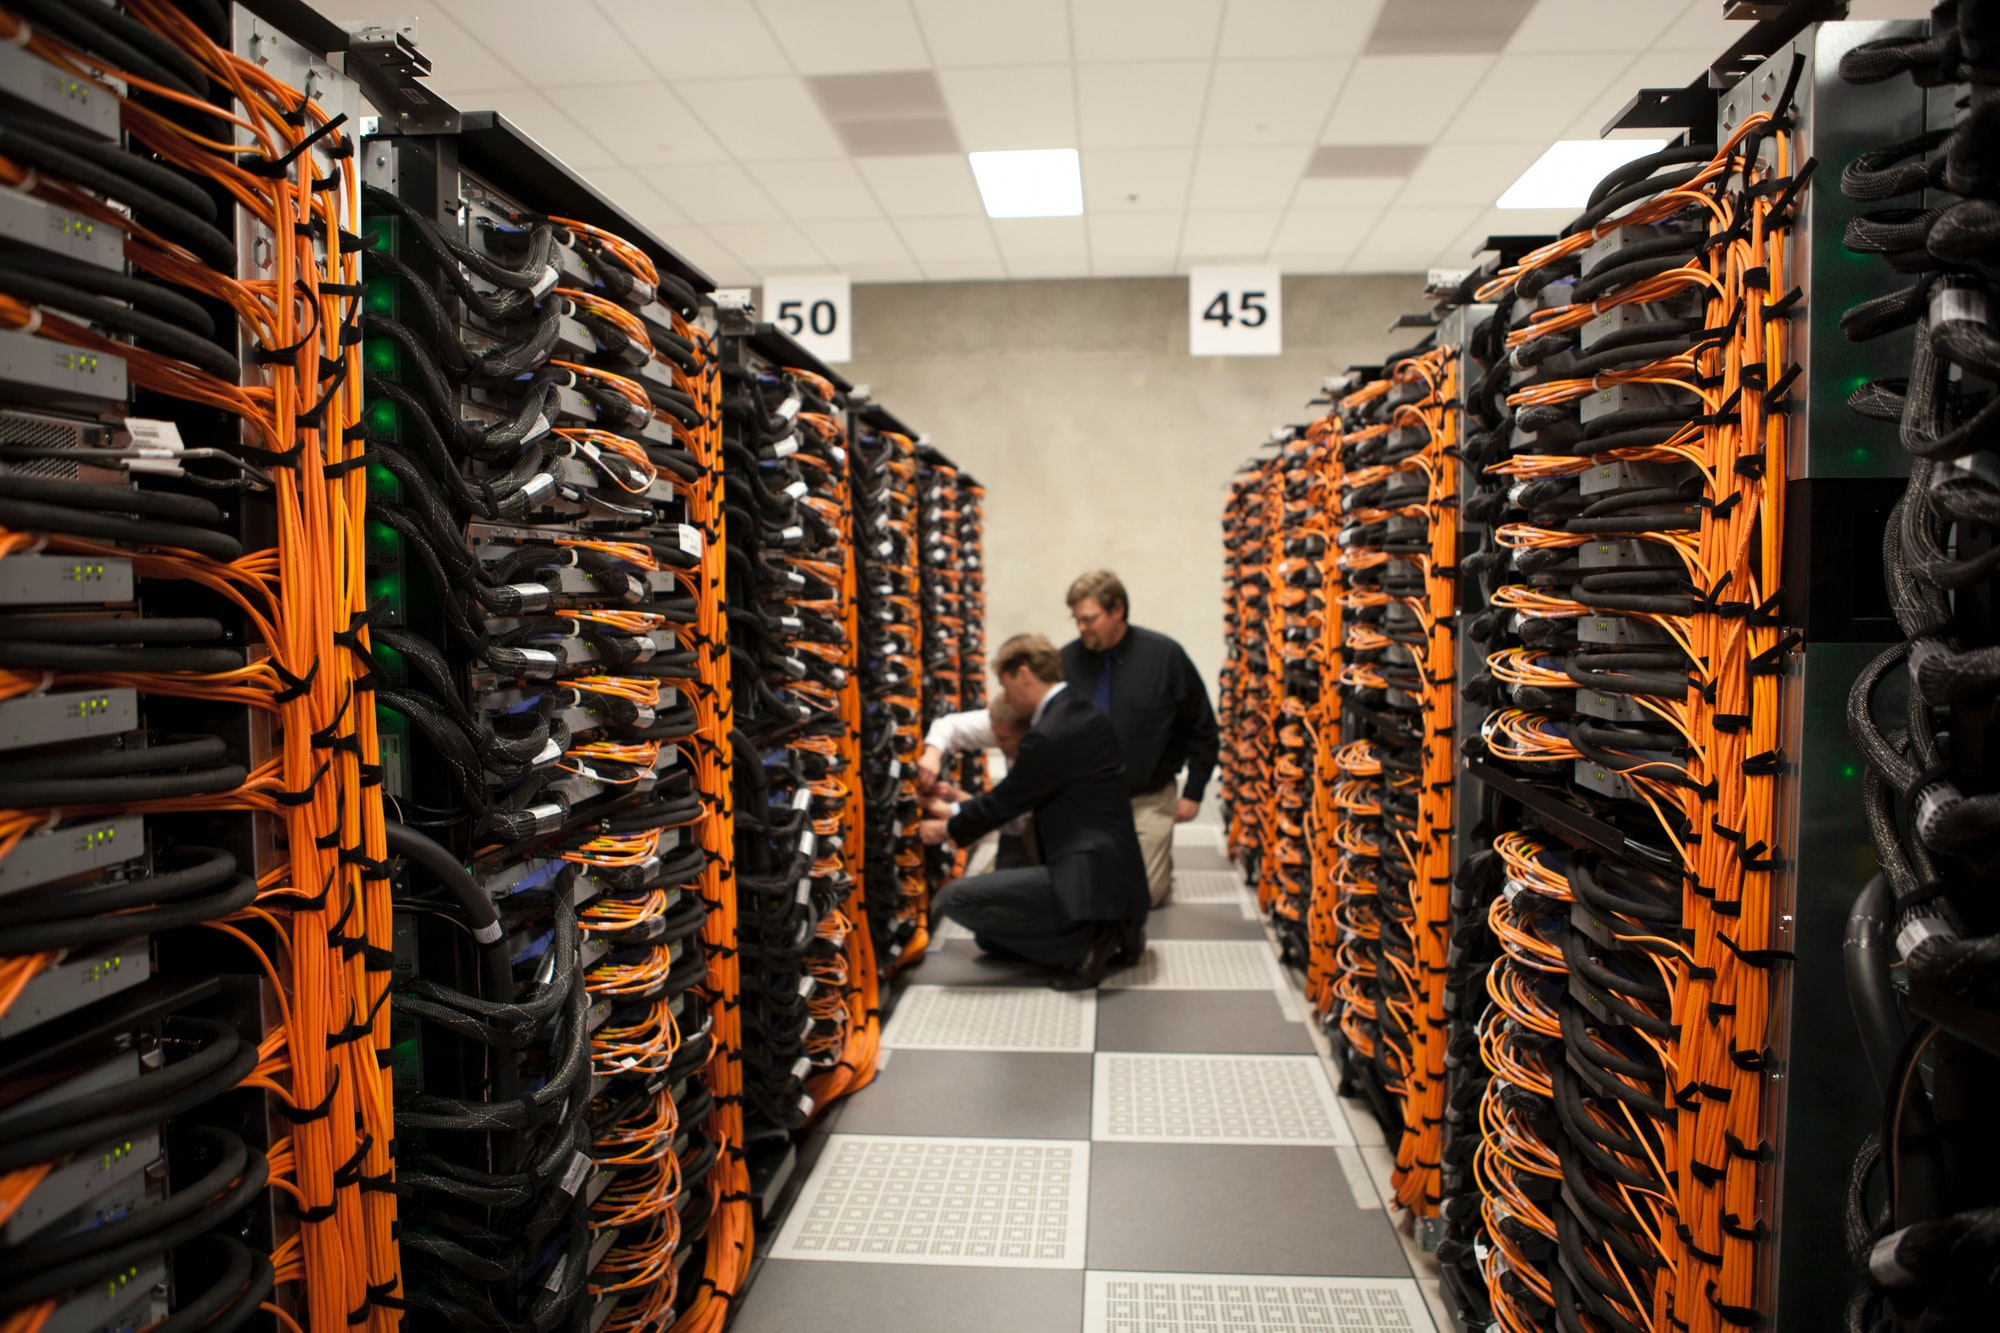 At Argonne National Laboratory, MIRA has been ranked the third fastest supercomputer in the world as of 2012.